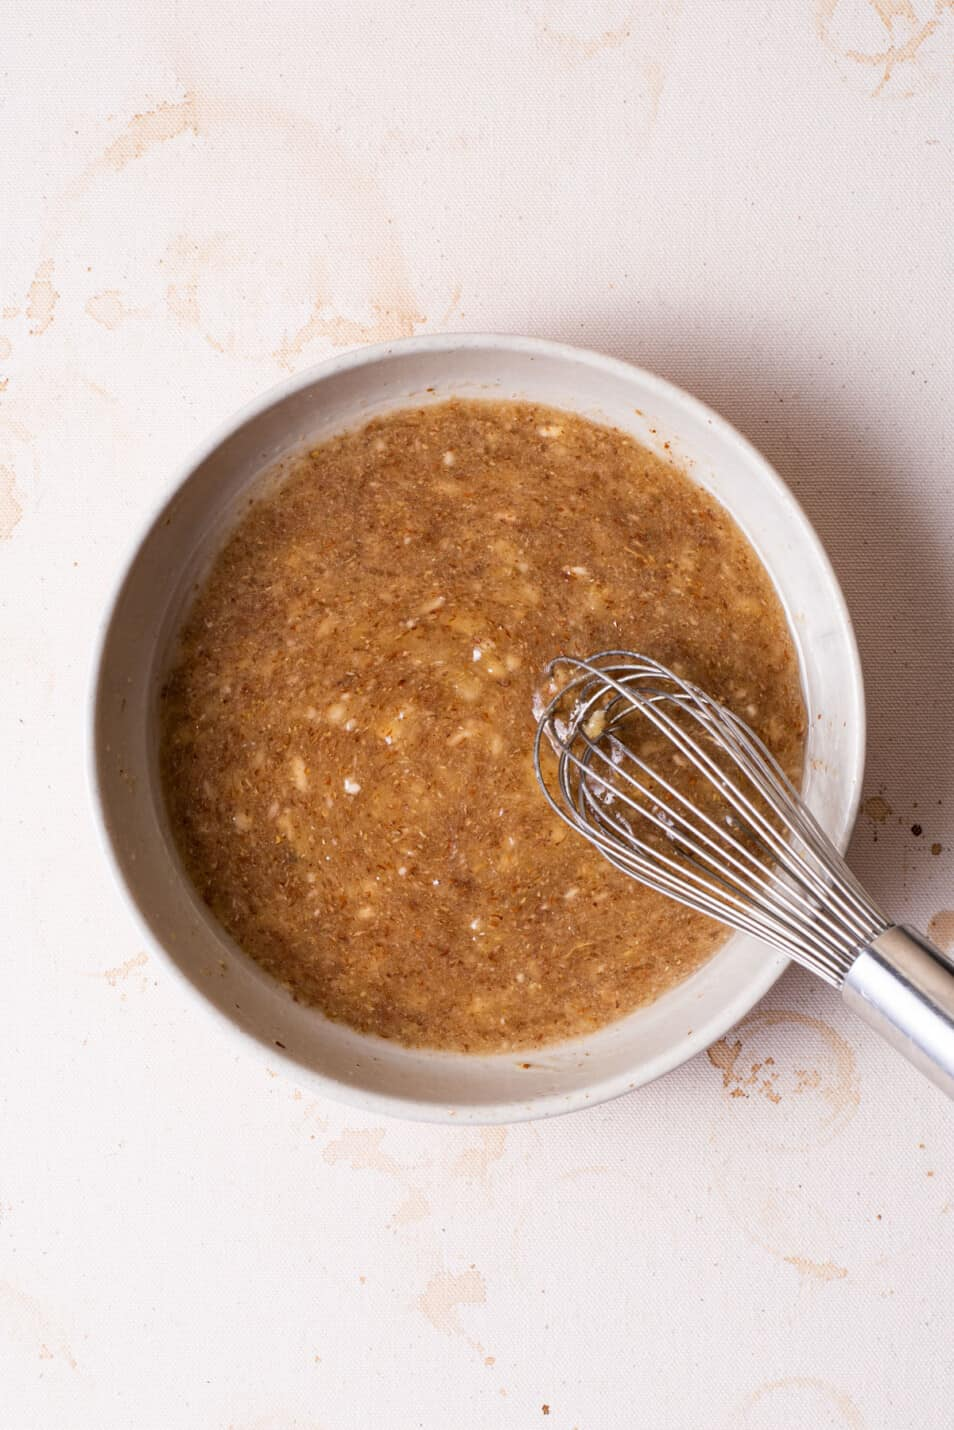 Mashed banana, coconut oil, and sugar whisked together in a bowl.